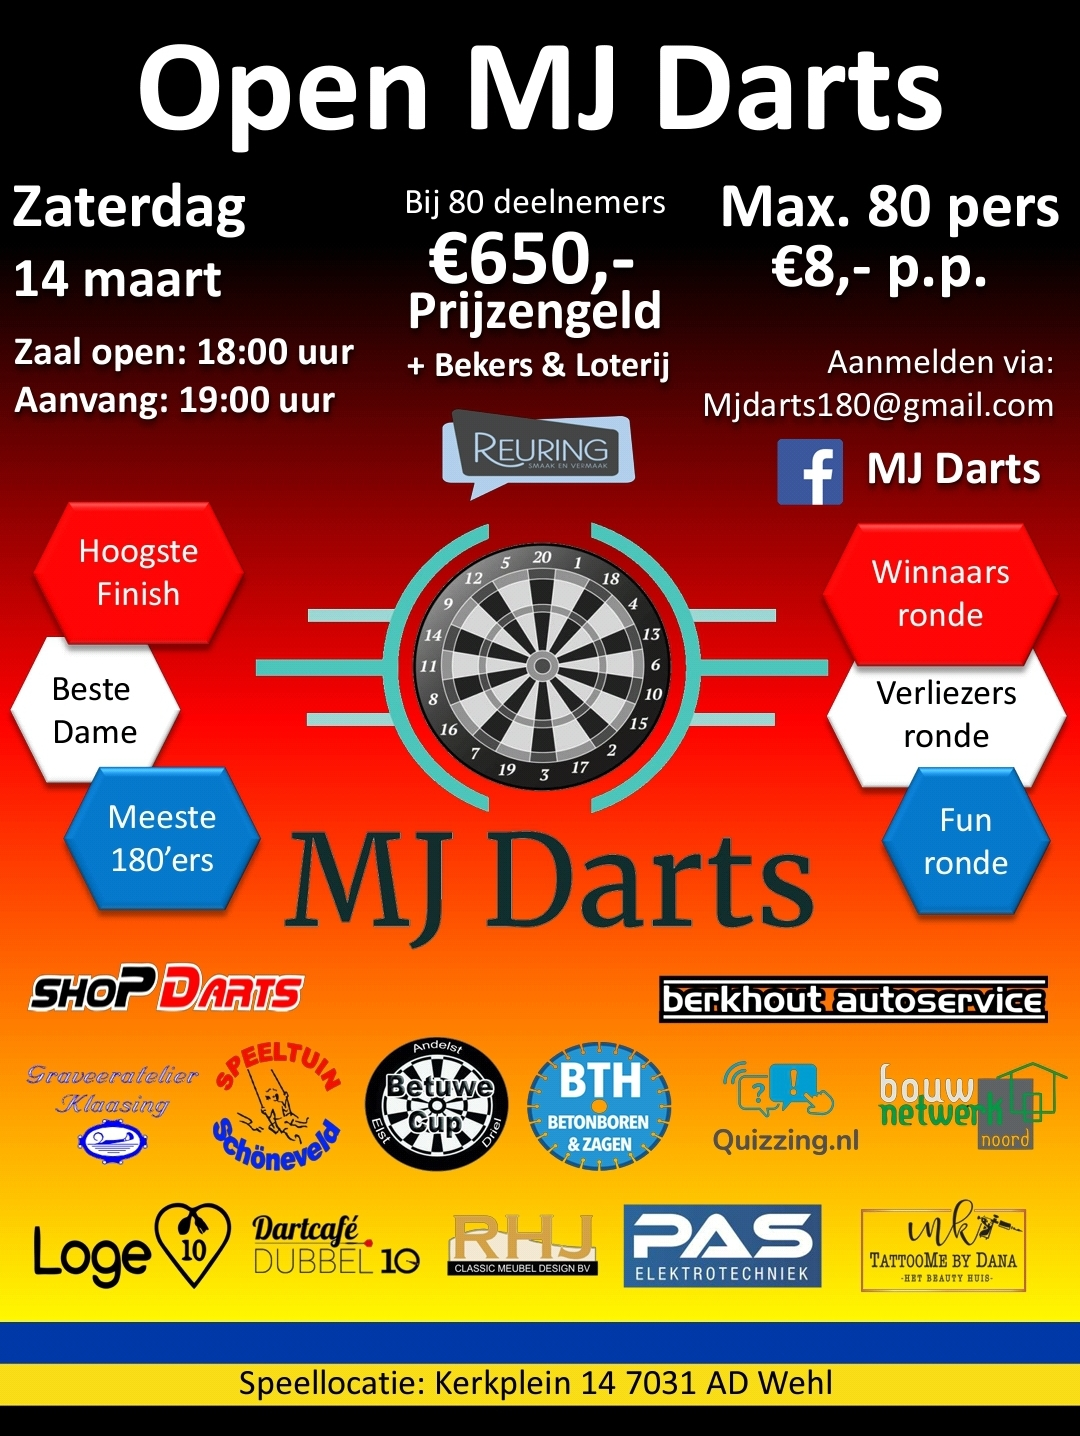 Open MJ Darts